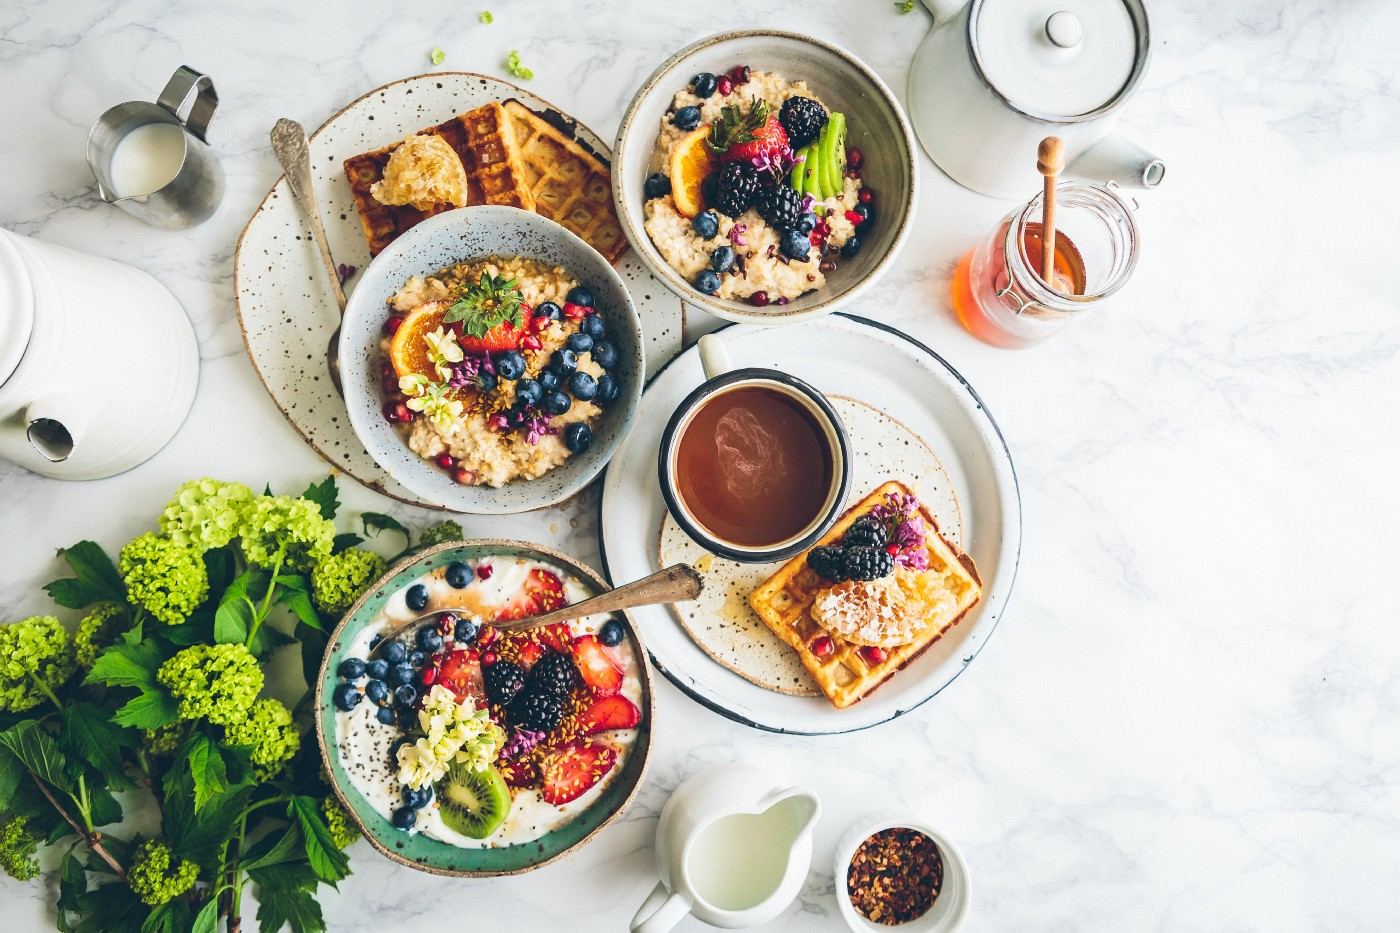 Strengthening the community with brunch